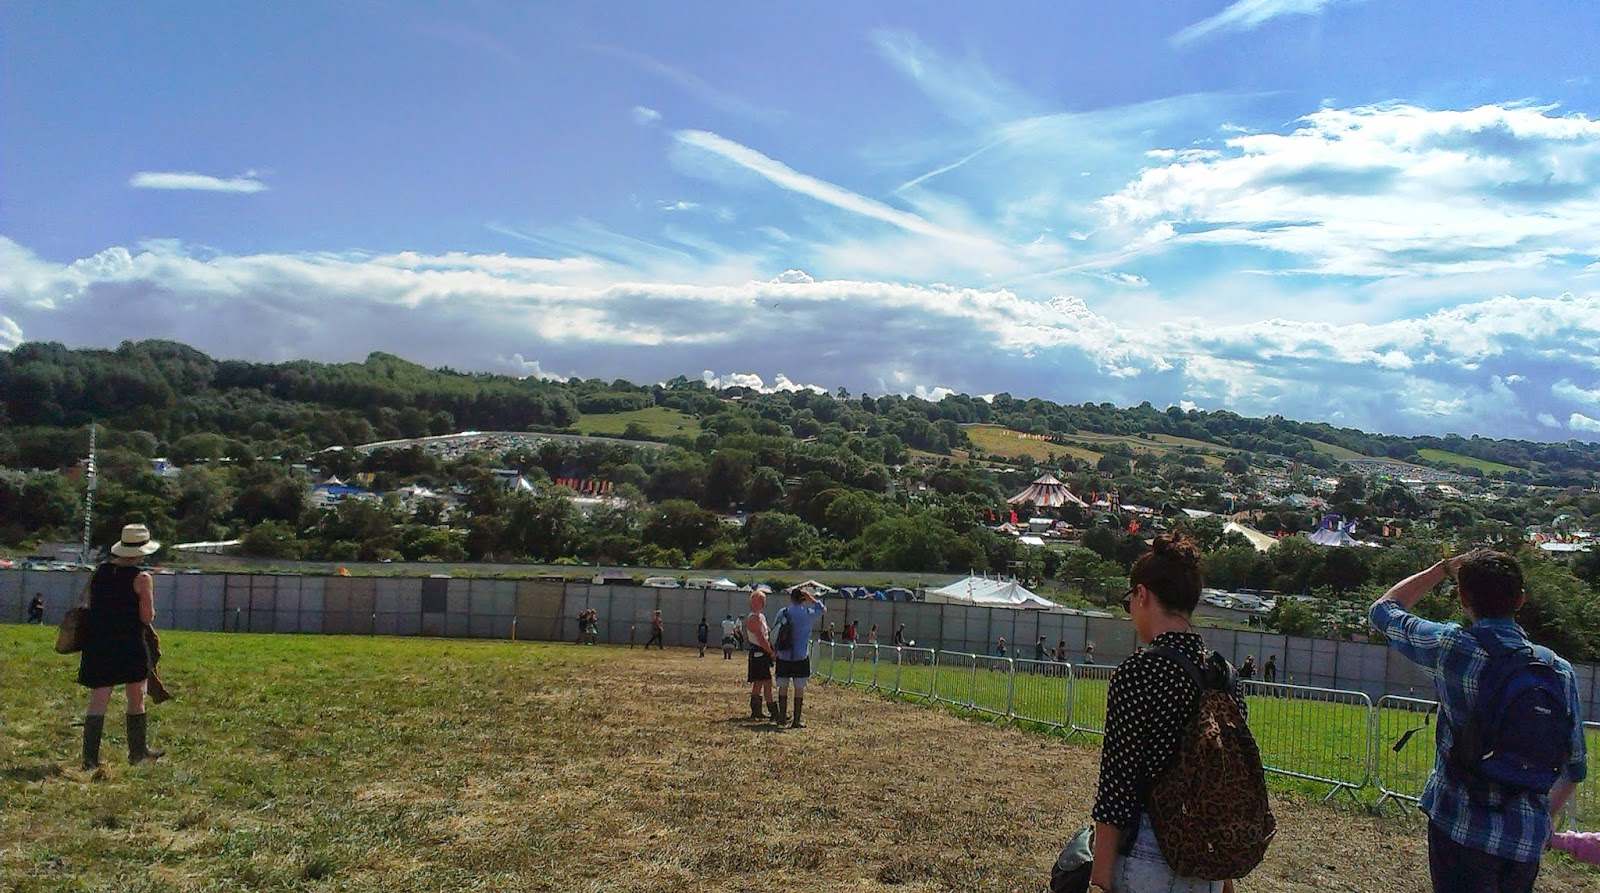 4pm - Walking into the festival site